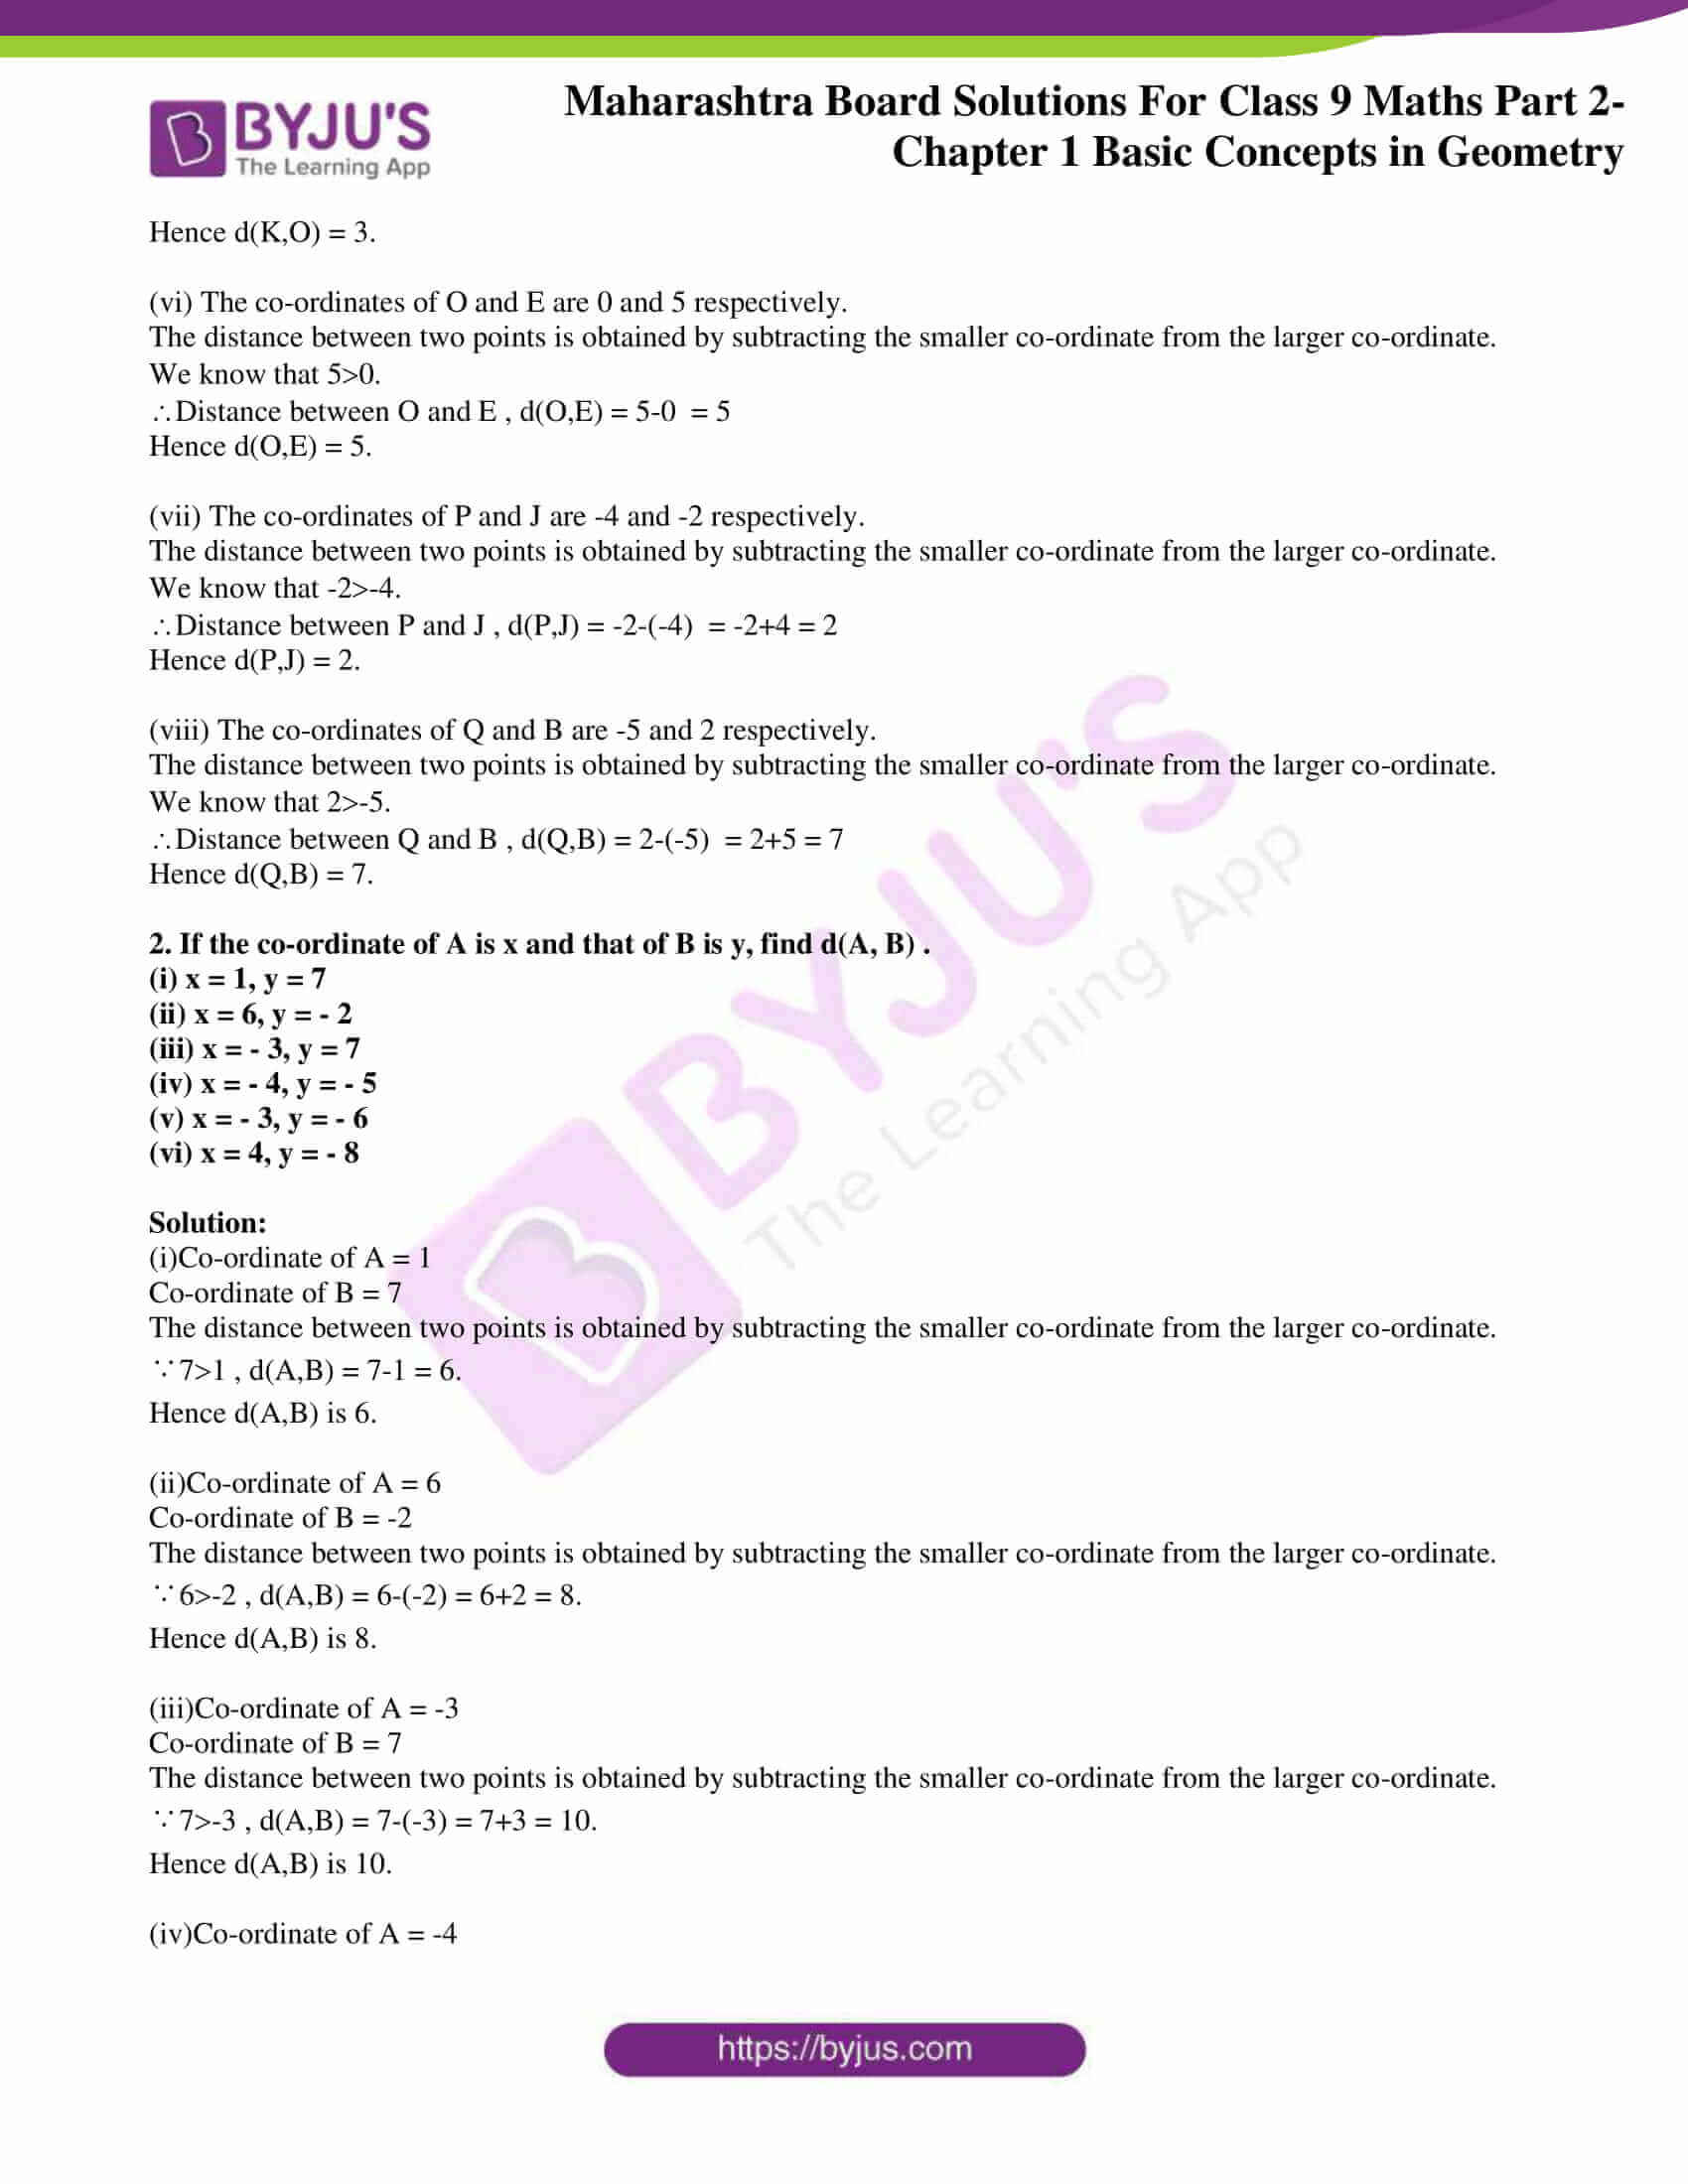 msbshse solutions for class 9 maths part 2 chapter 1 02